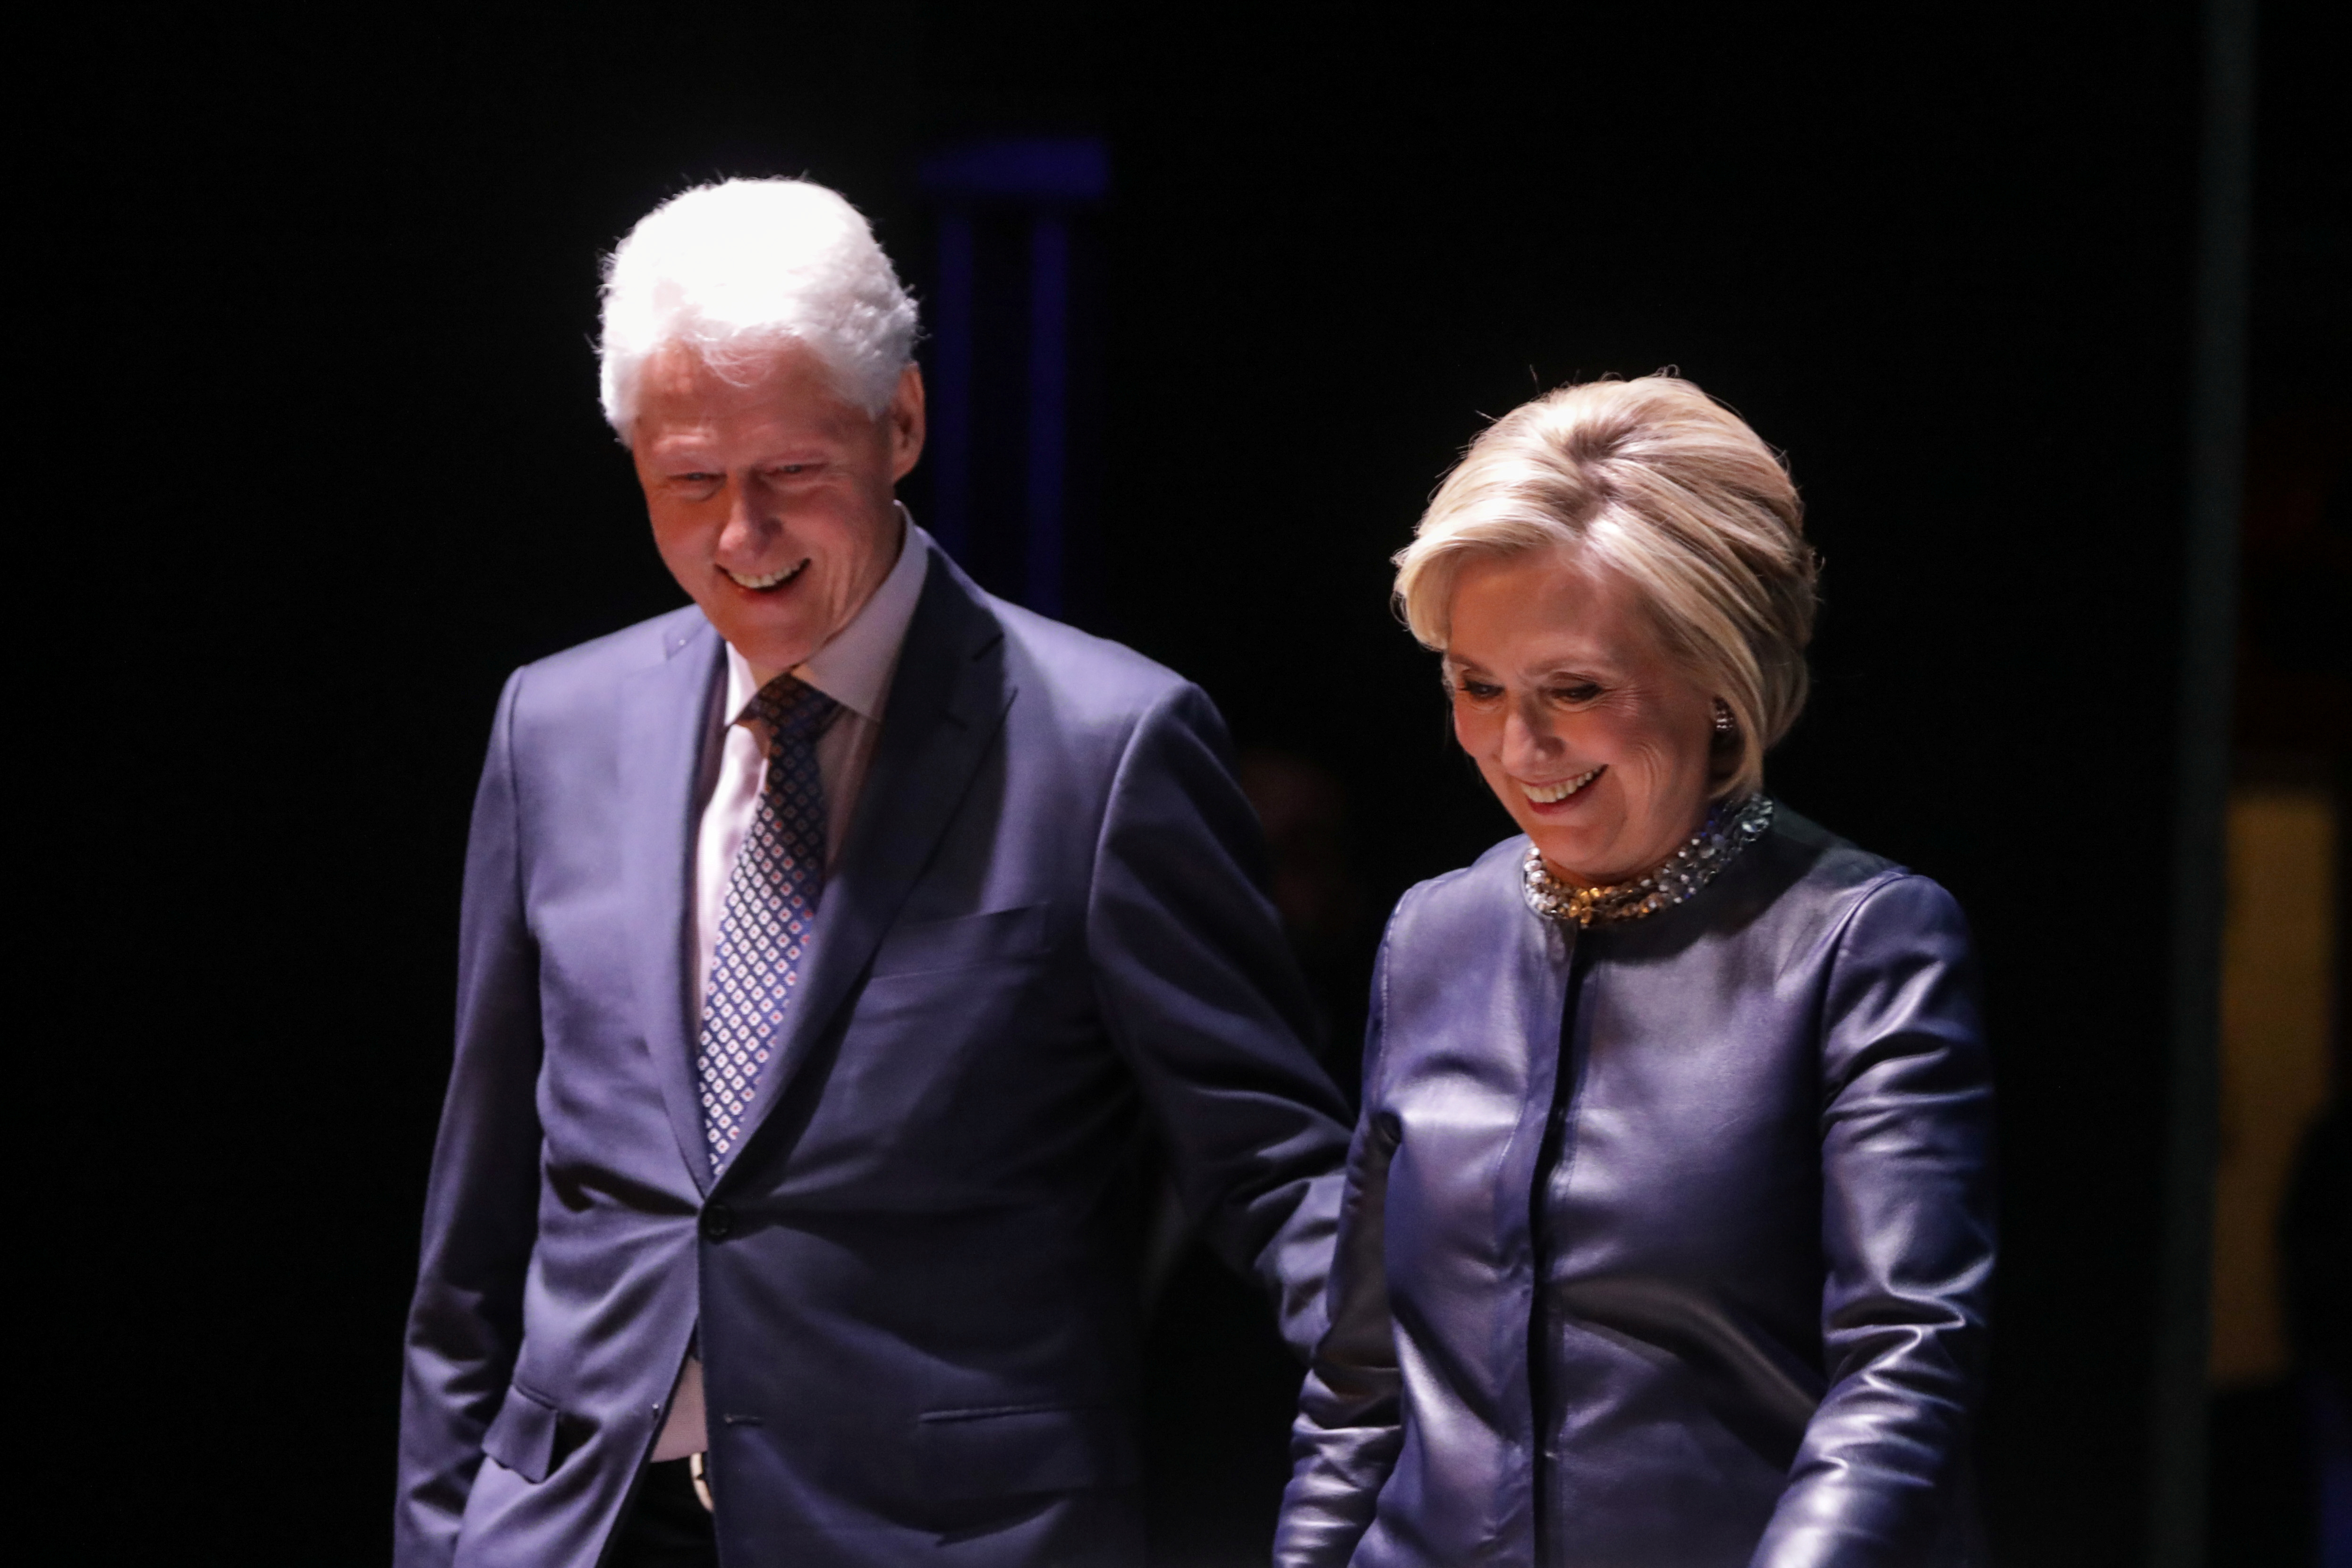 Former Secretary of State Hillary Clinton and former President Bill Clinton appear together during a joint on stage conversation event at the Beacon Theatre in New York, U.S., April 11, 2019. REUTERS/Stephen Yang